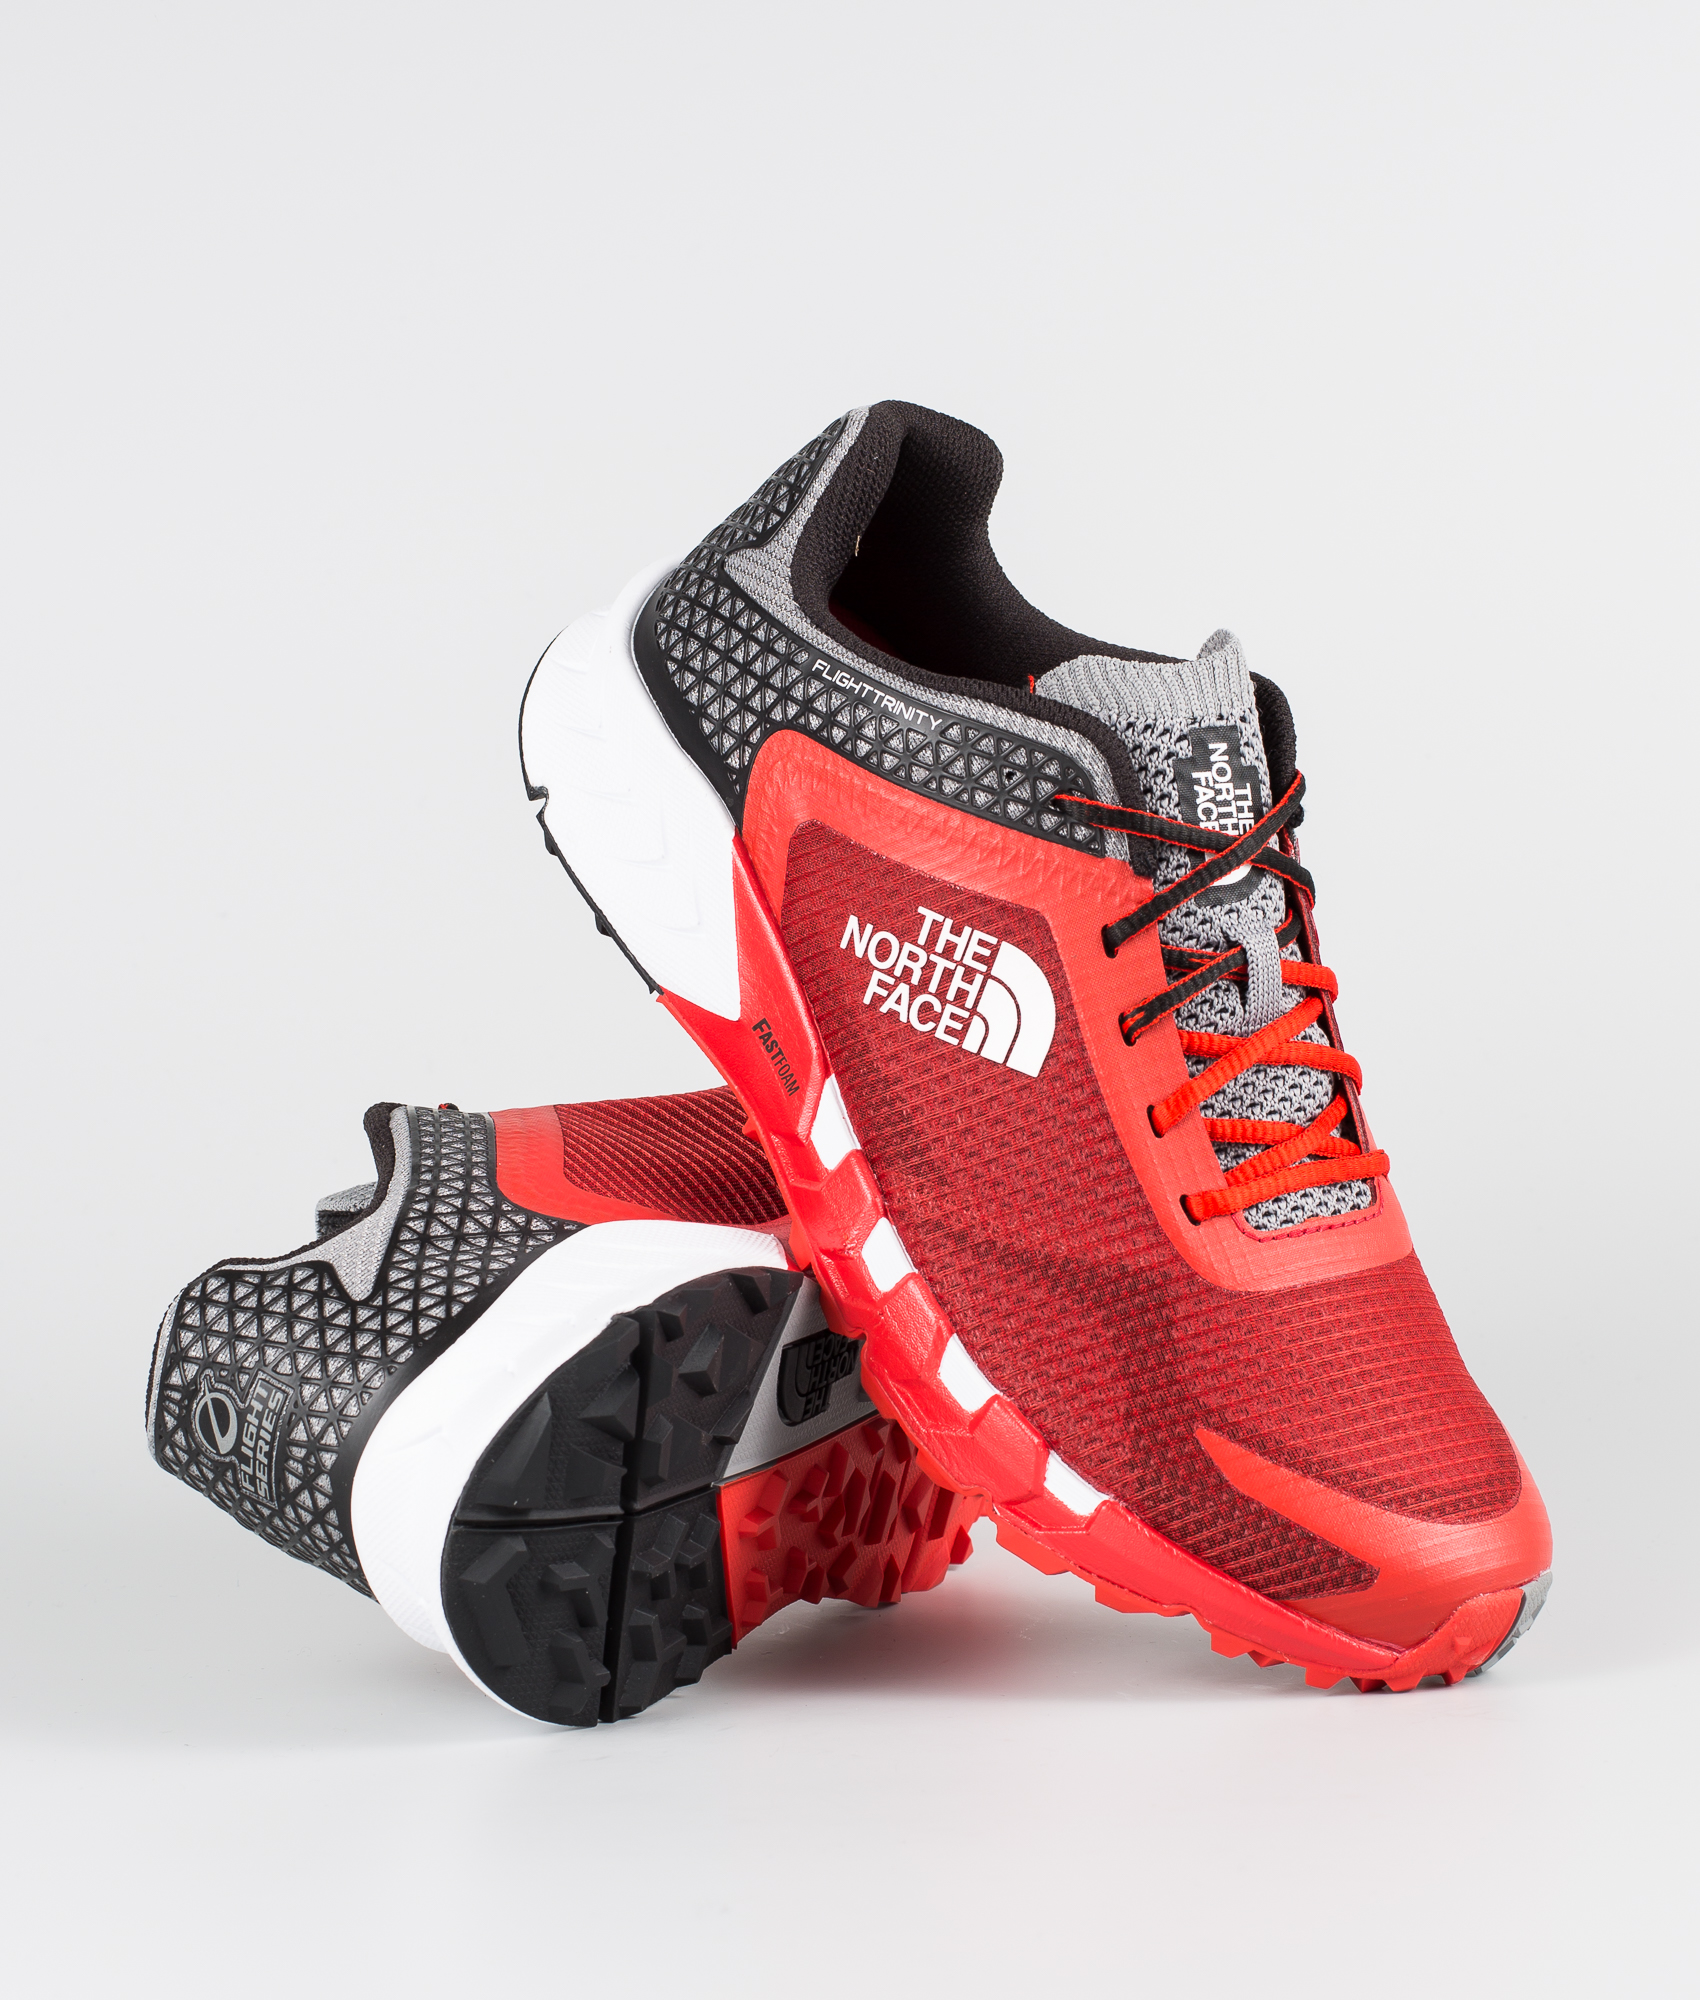 The North Face Flight Trinity Shoes